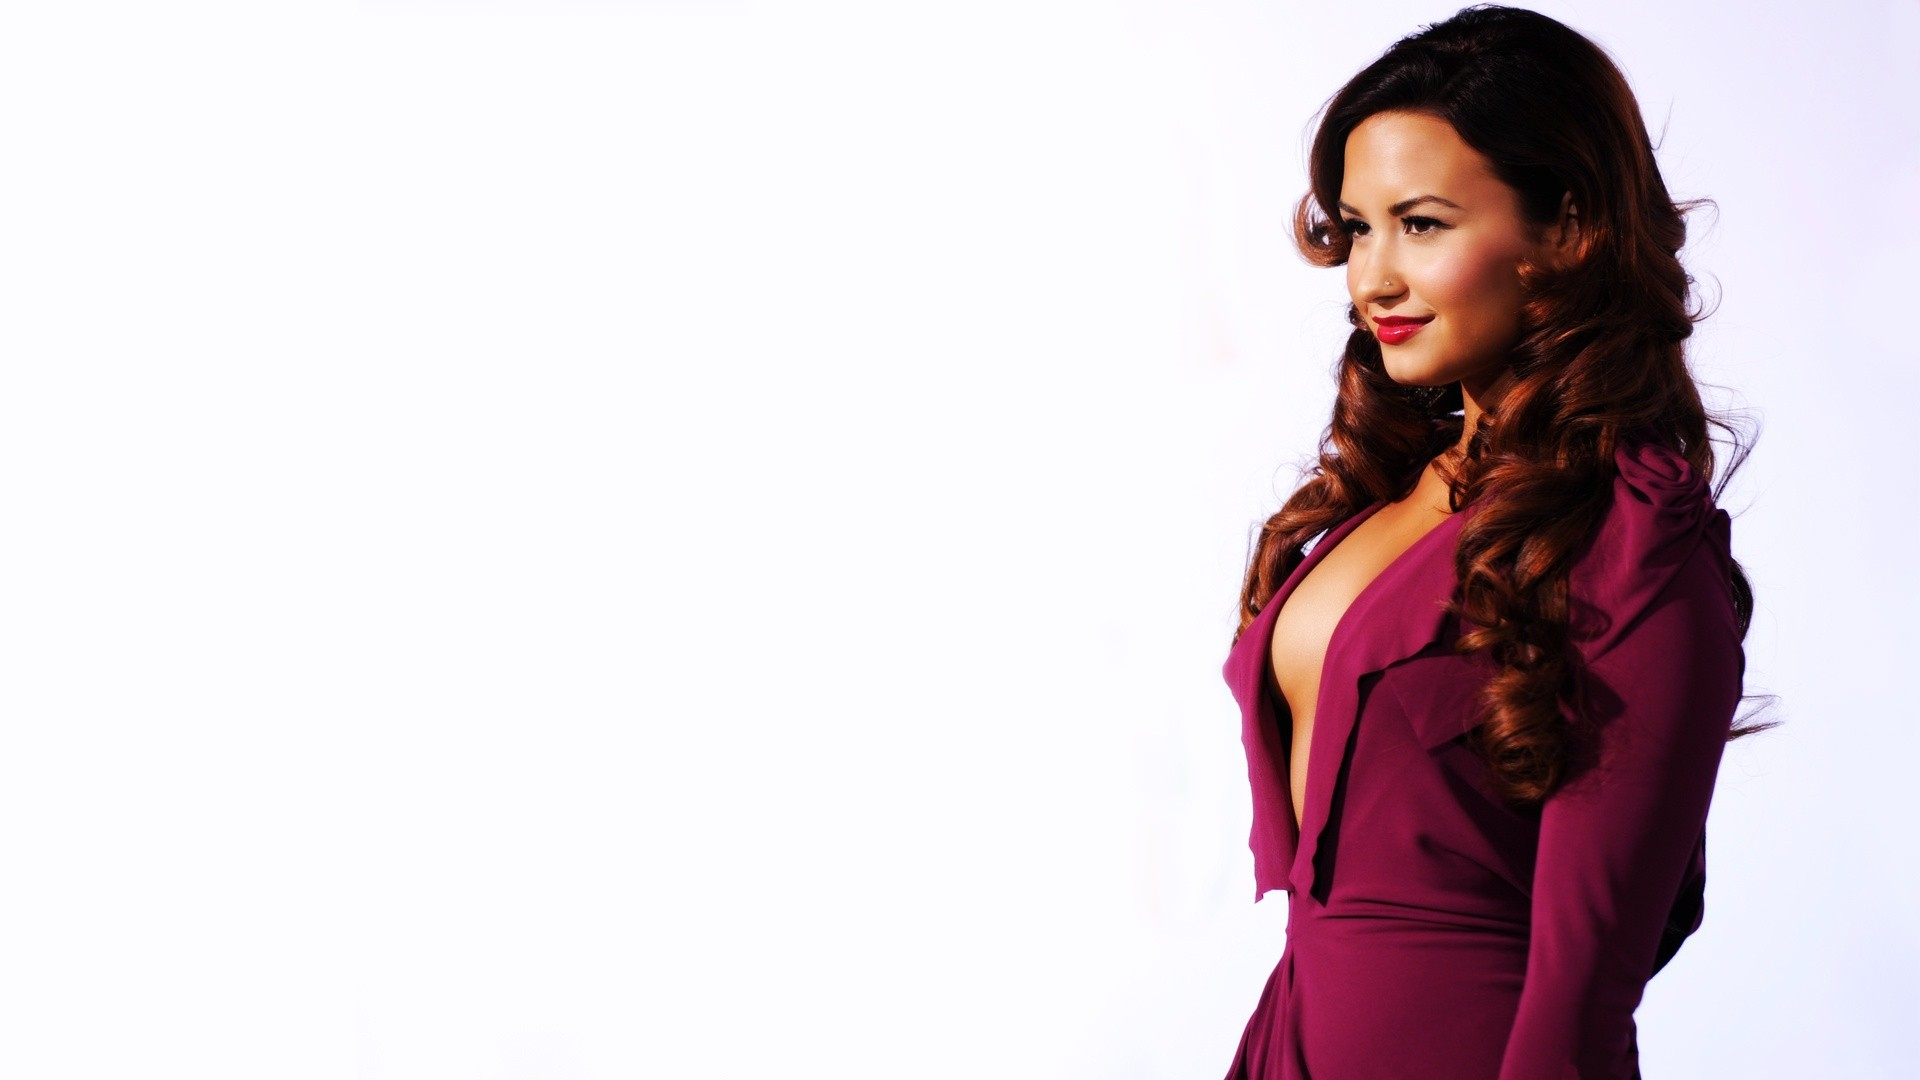 Hot Demi Lovato - Wallpaper, High Definition, High Quality ...